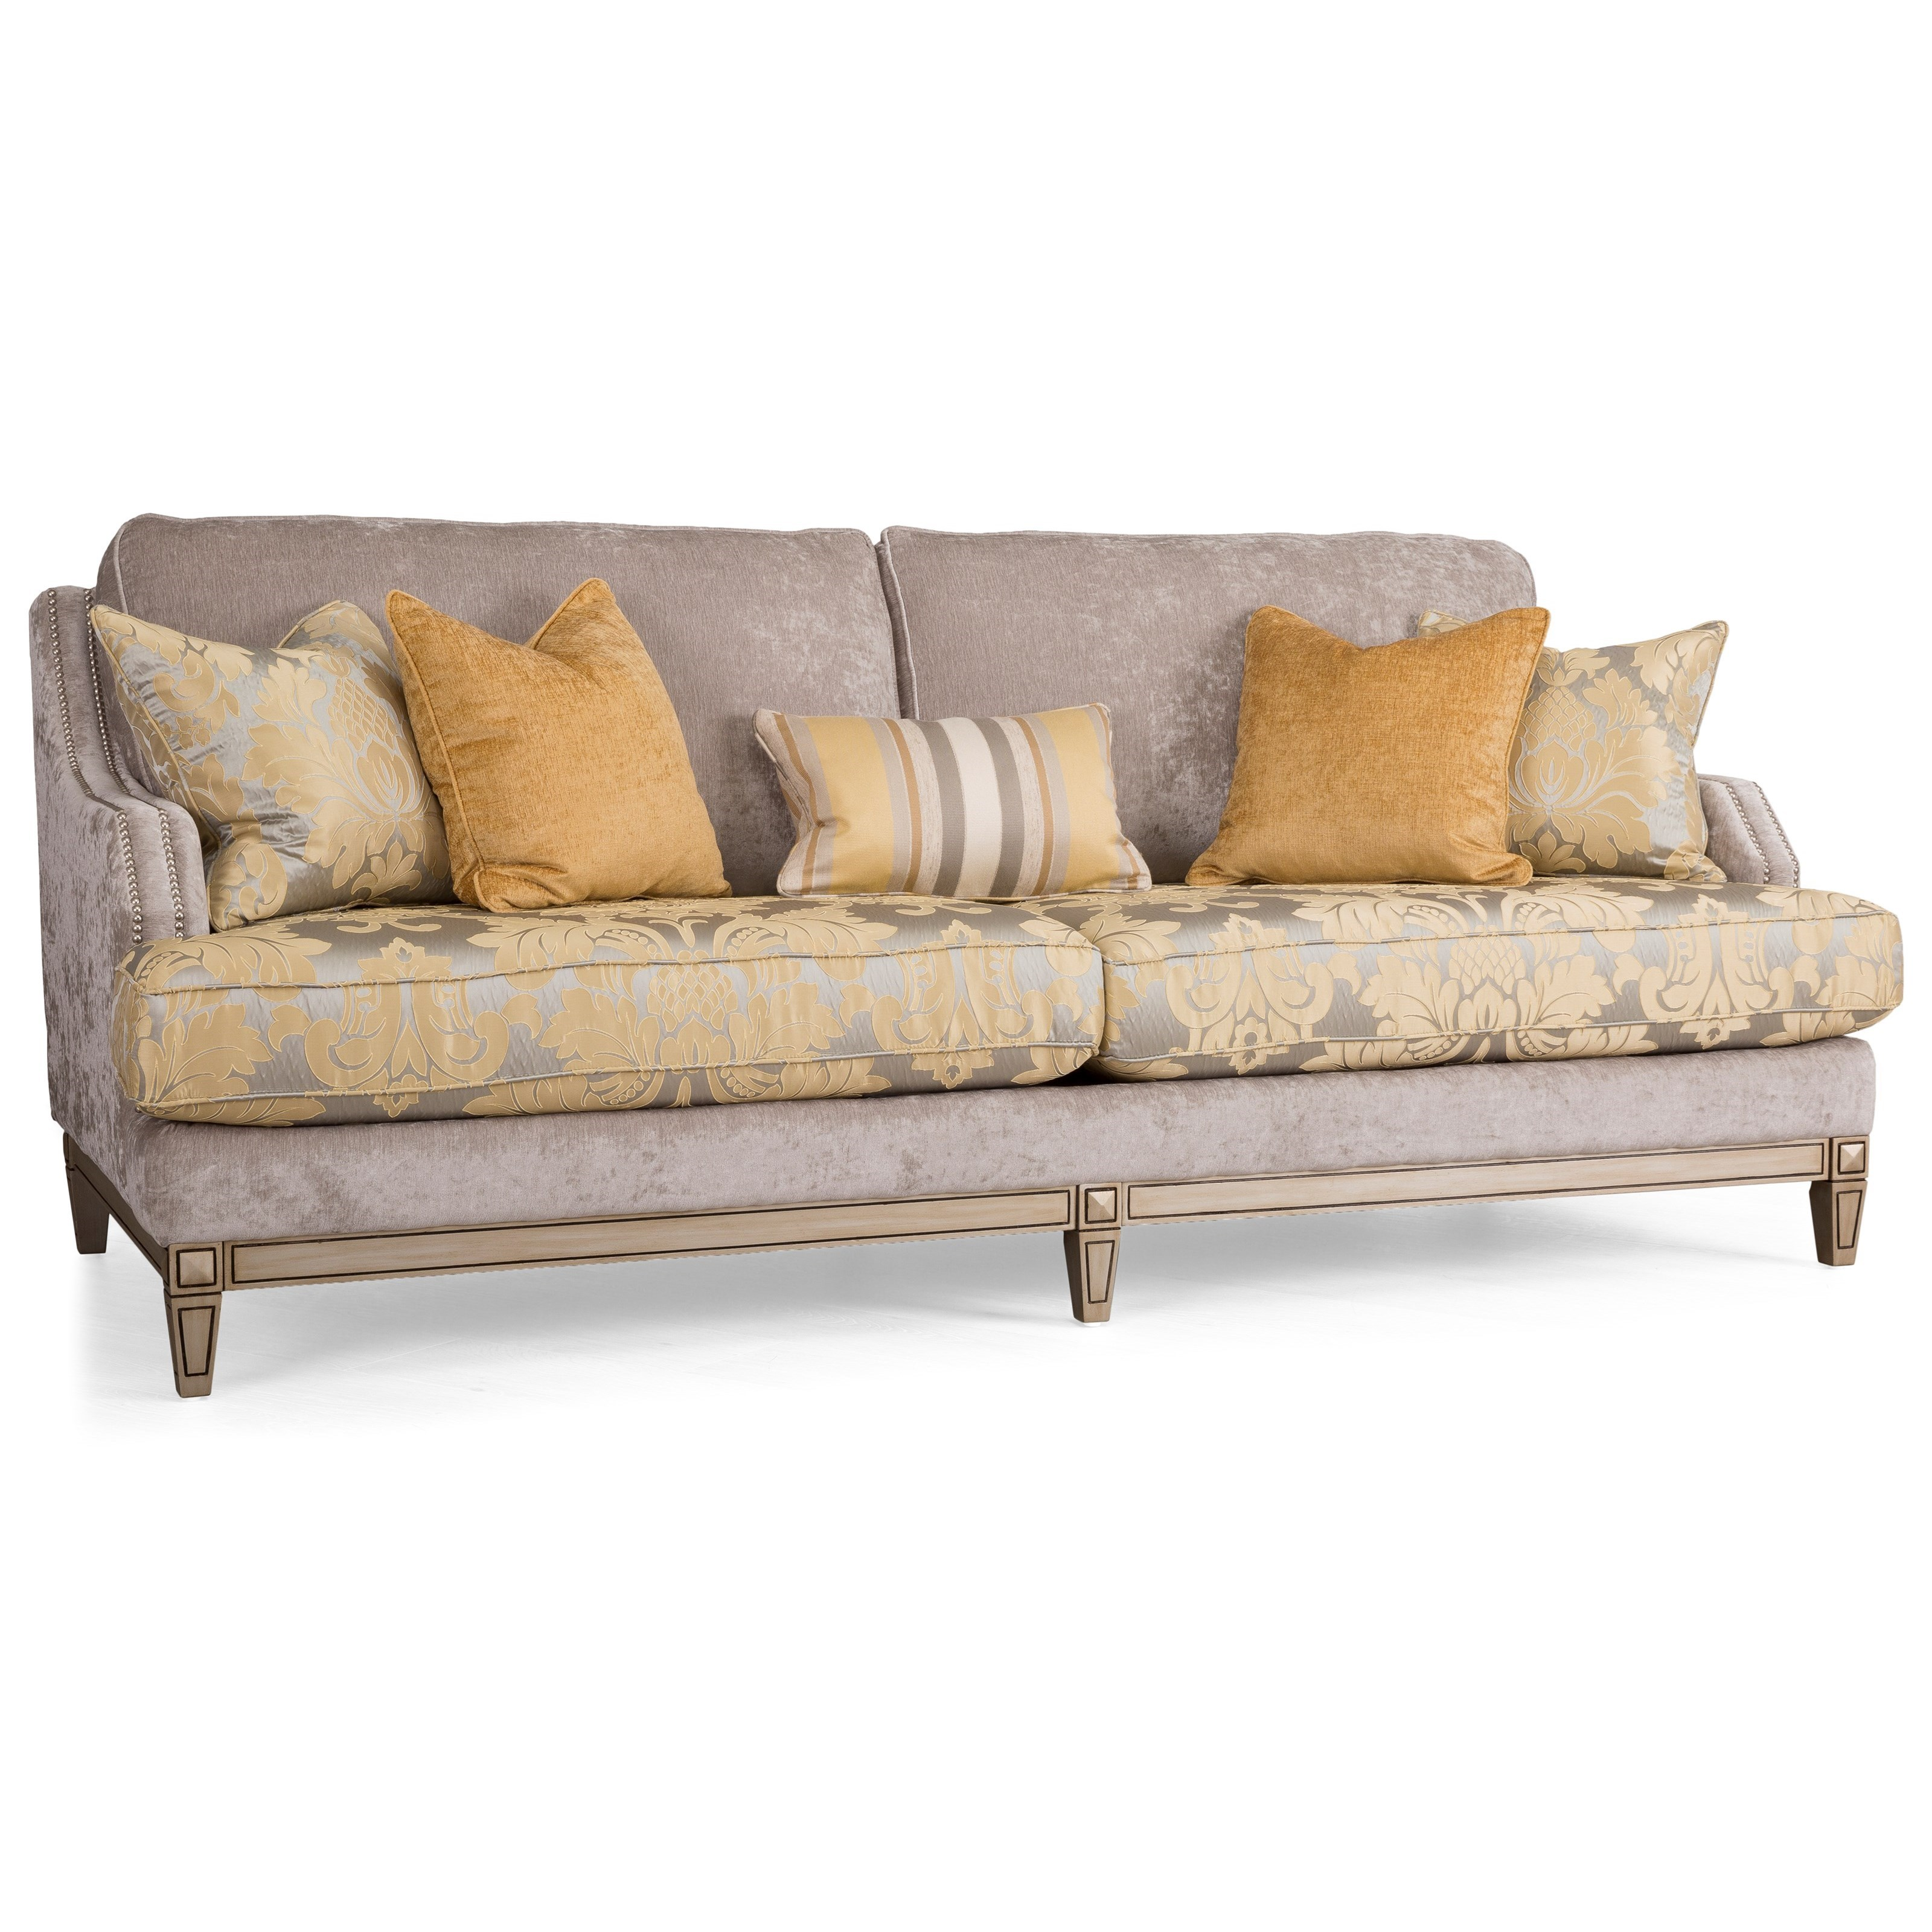 6251 Series Sofa by Decor-Rest at Johnny Janosik